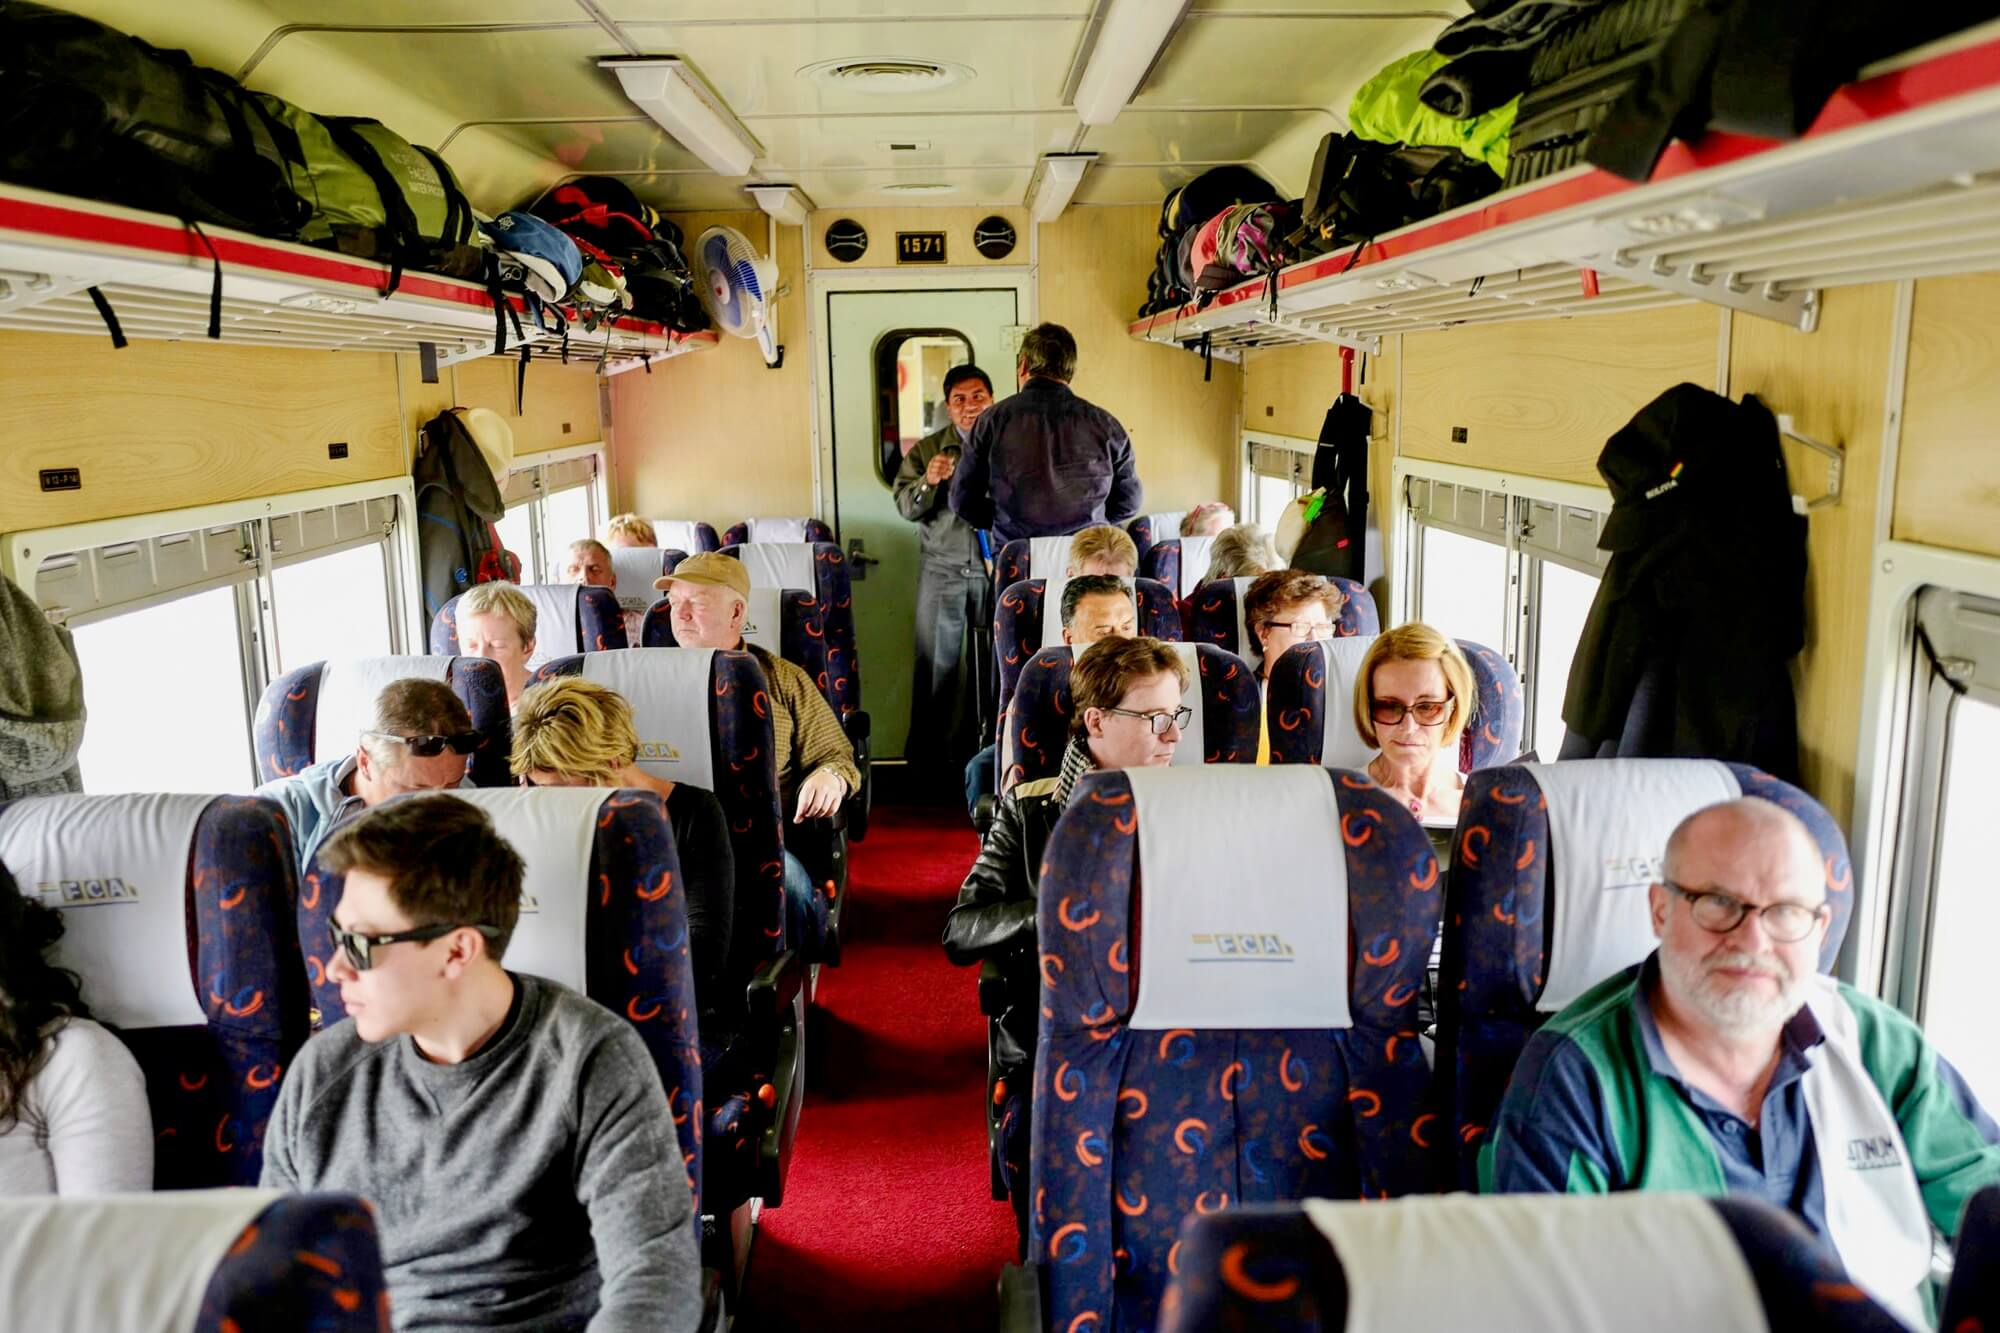 Inside a Passenger Carriage of the Expreso del Sur between Oruro and Villazon, Bolivia